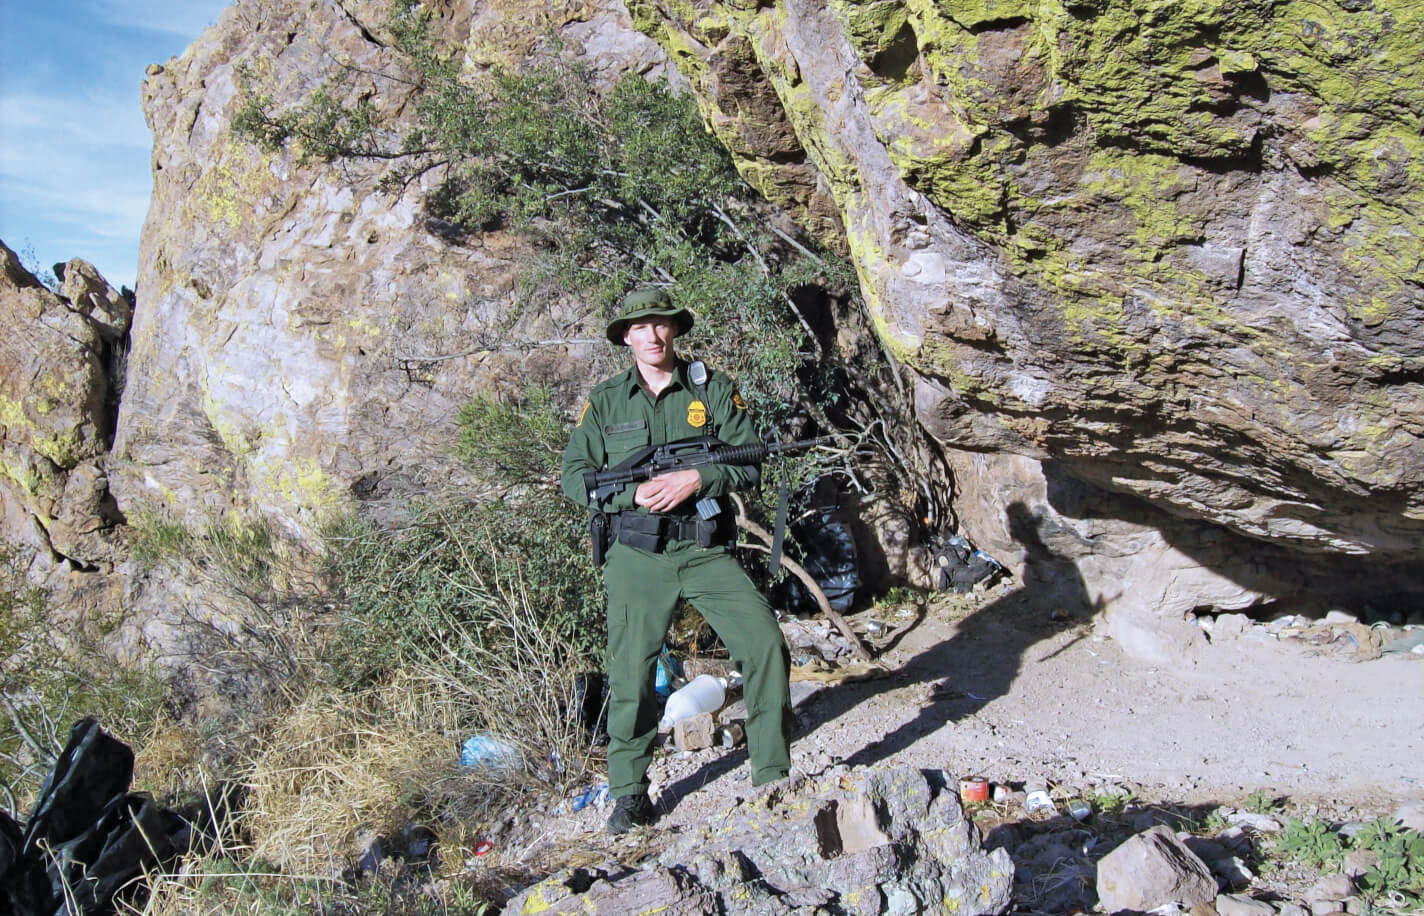 A young man in a green uniform stands on the edge of a desert cliff